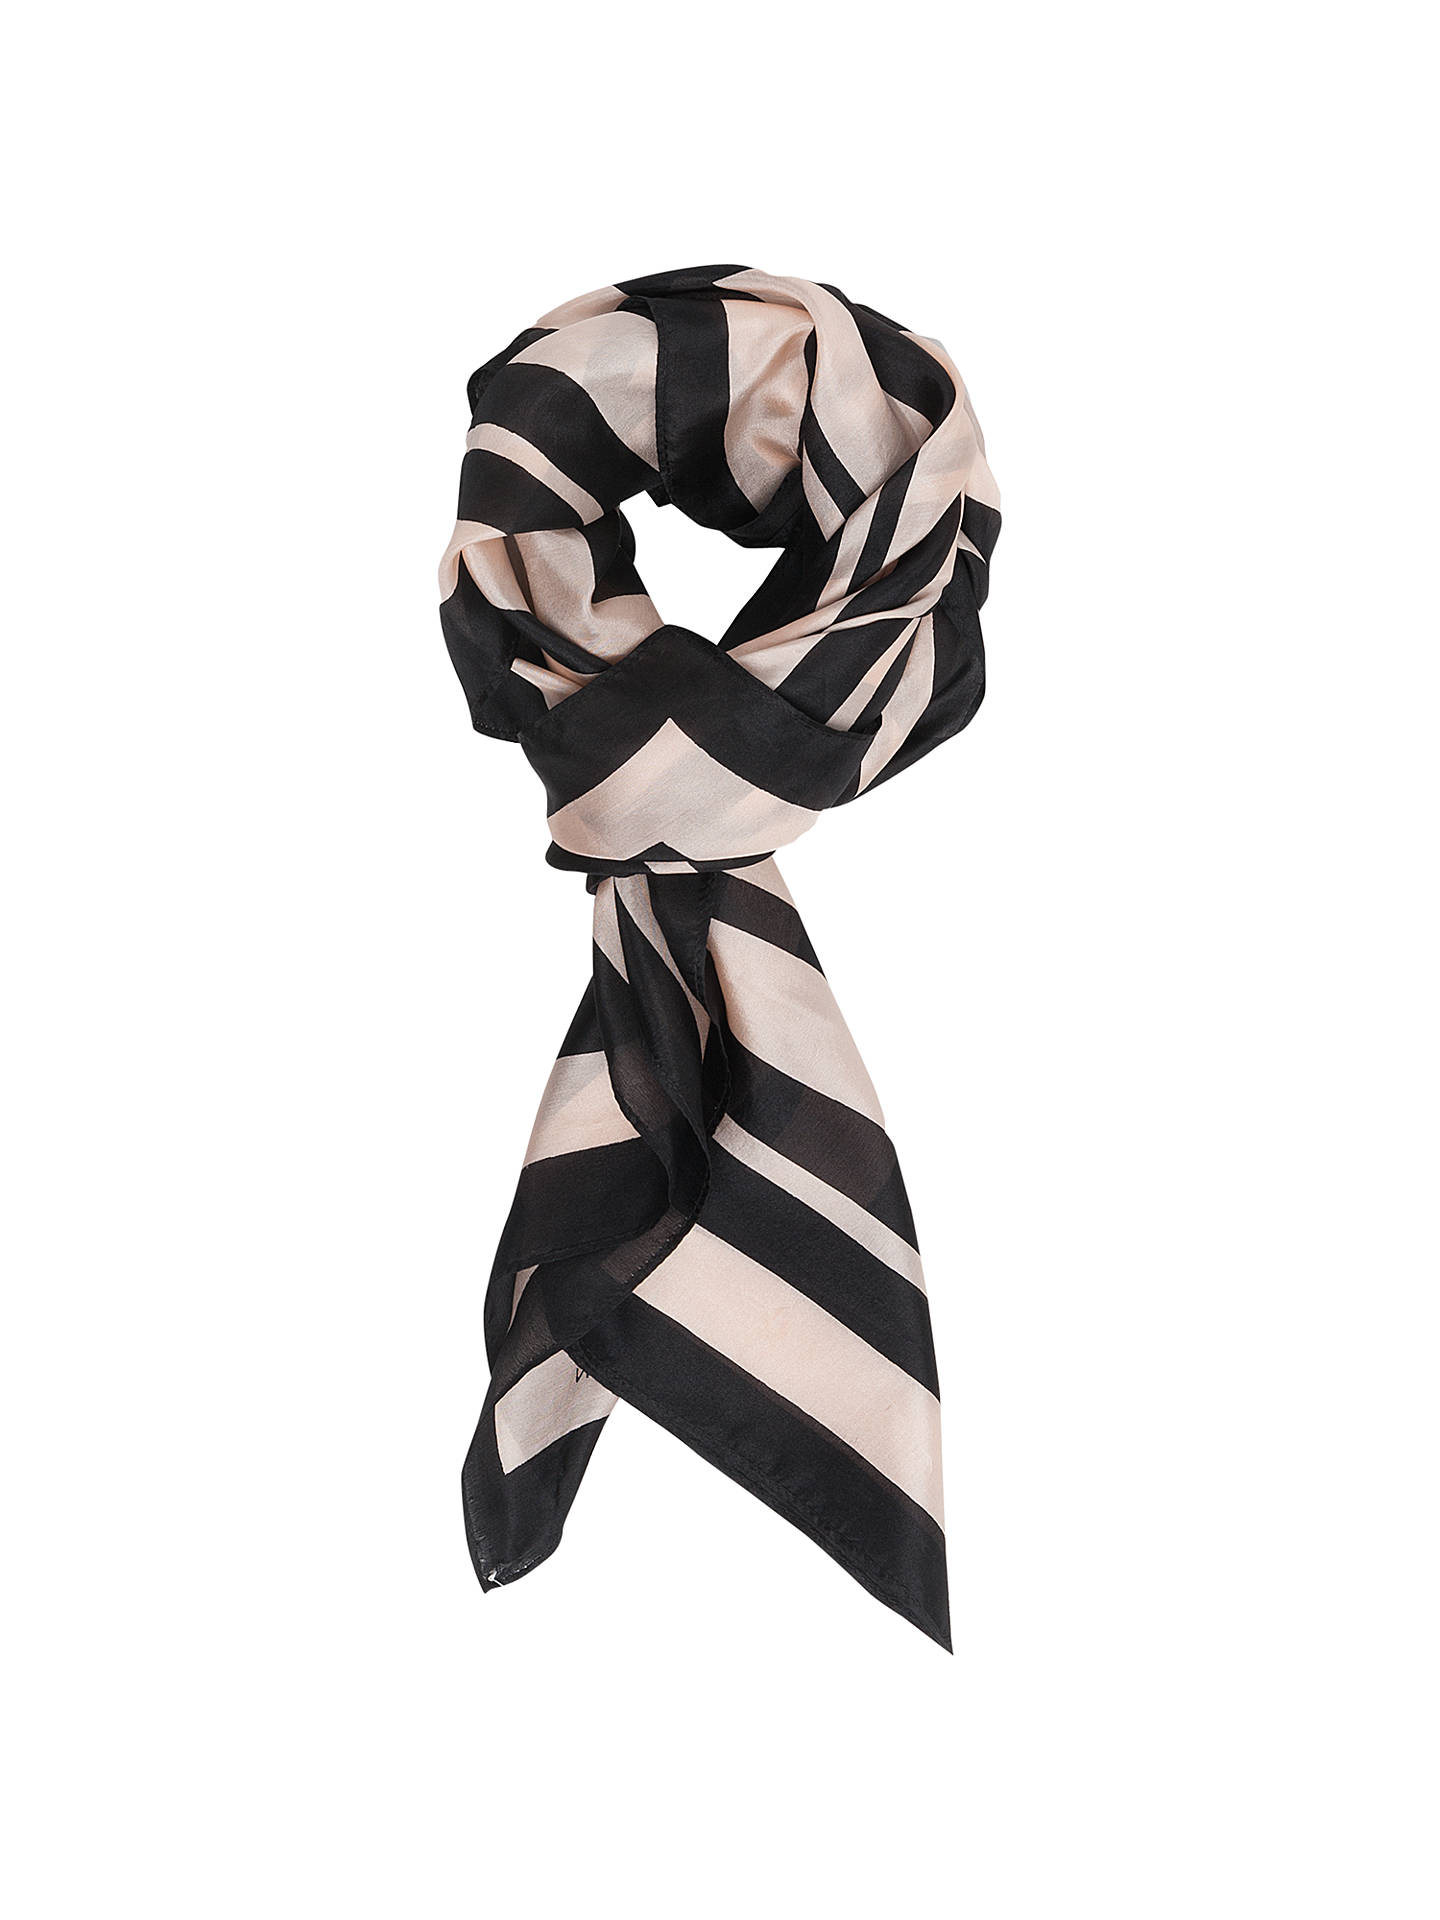 BuyFrench Connection Janet Striped Silk Scarf e192a57432ecf